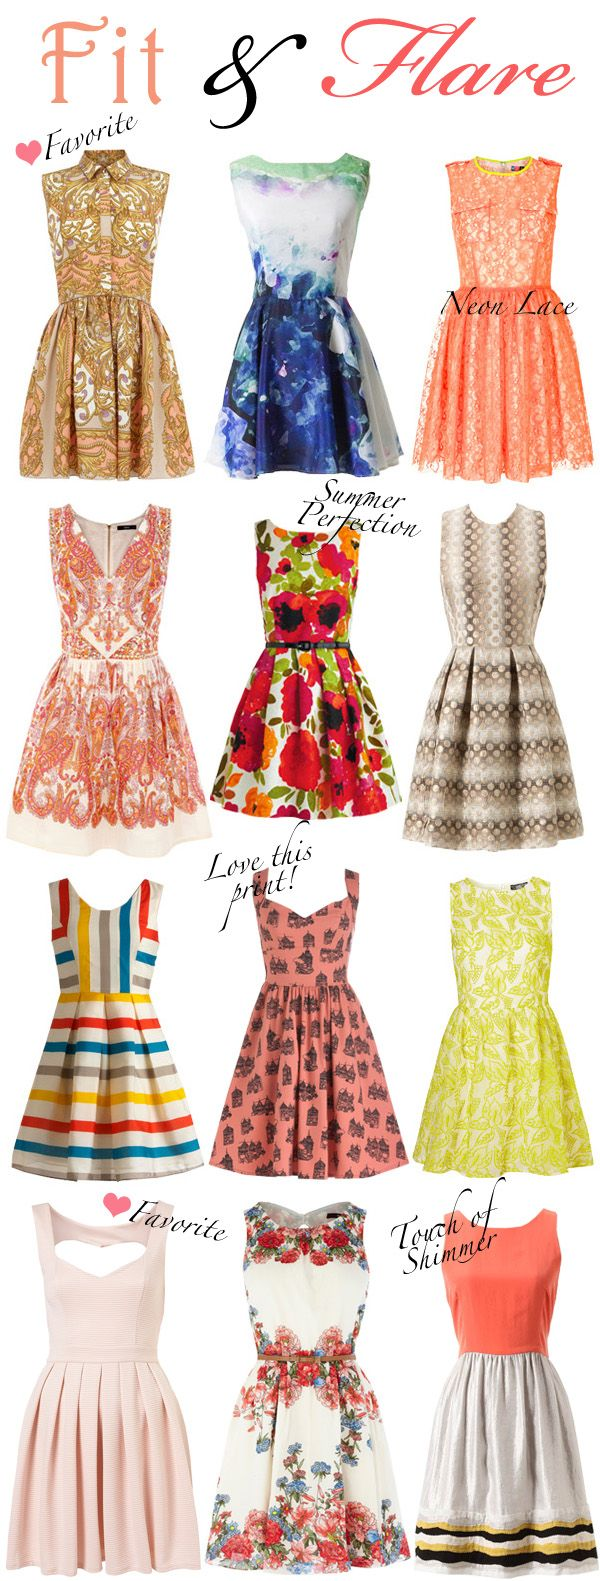 : Fit And Flare Summer Dresses, Adorable Dresses, So Cute, Cute Dresses, Fit And Flare Dresses, Types Of Dresses, Fit Flare Dresses, Flair Dresses, My Style